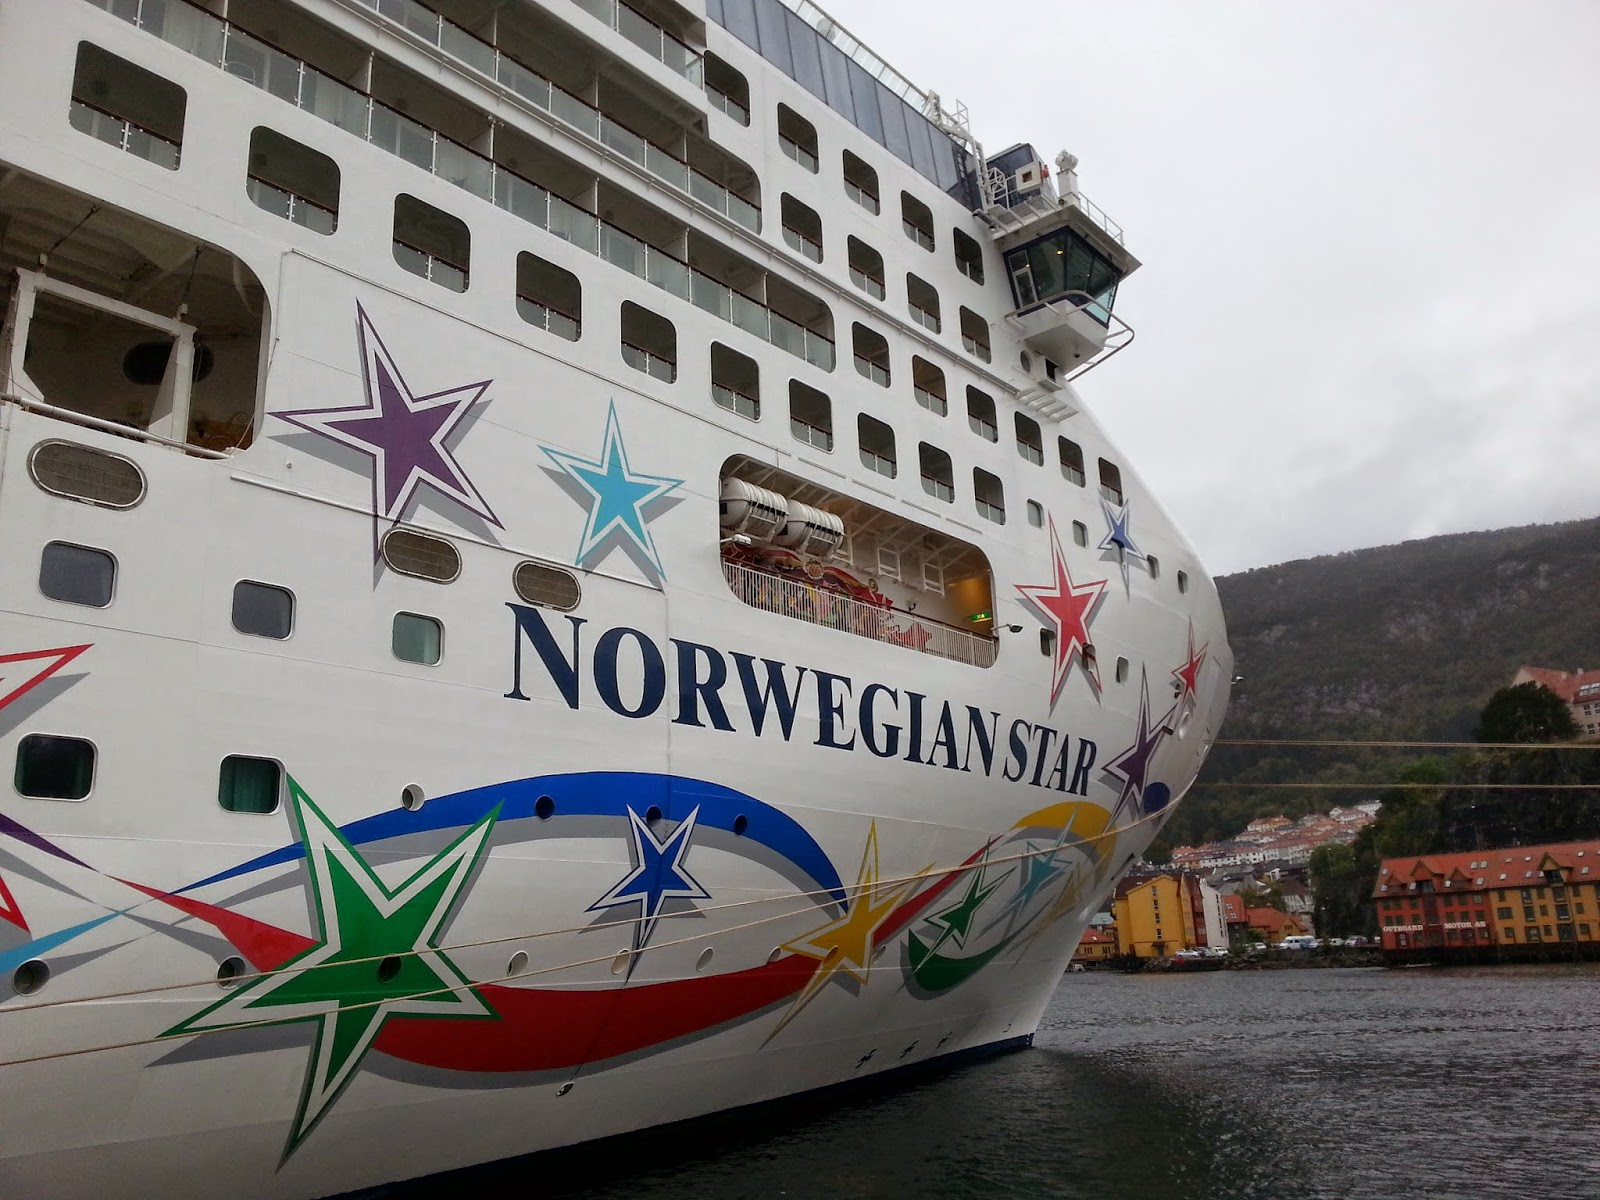 Cruise Ship Norwegian Star in Bergen, Norway